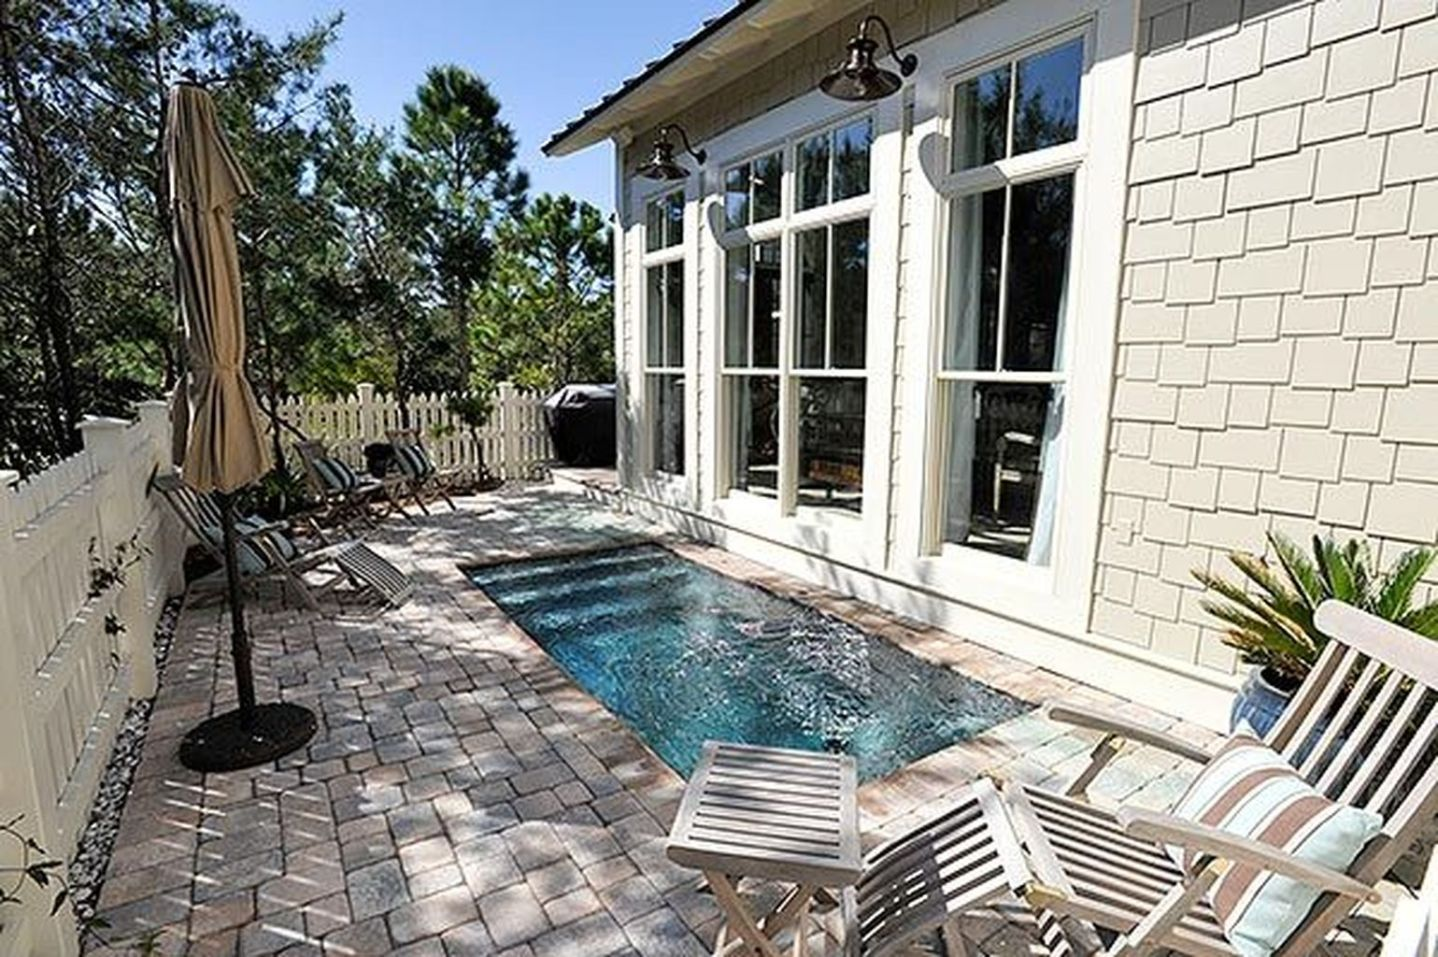 40 Spool Pool For Small Yards 8 Backyard Ideas Pools